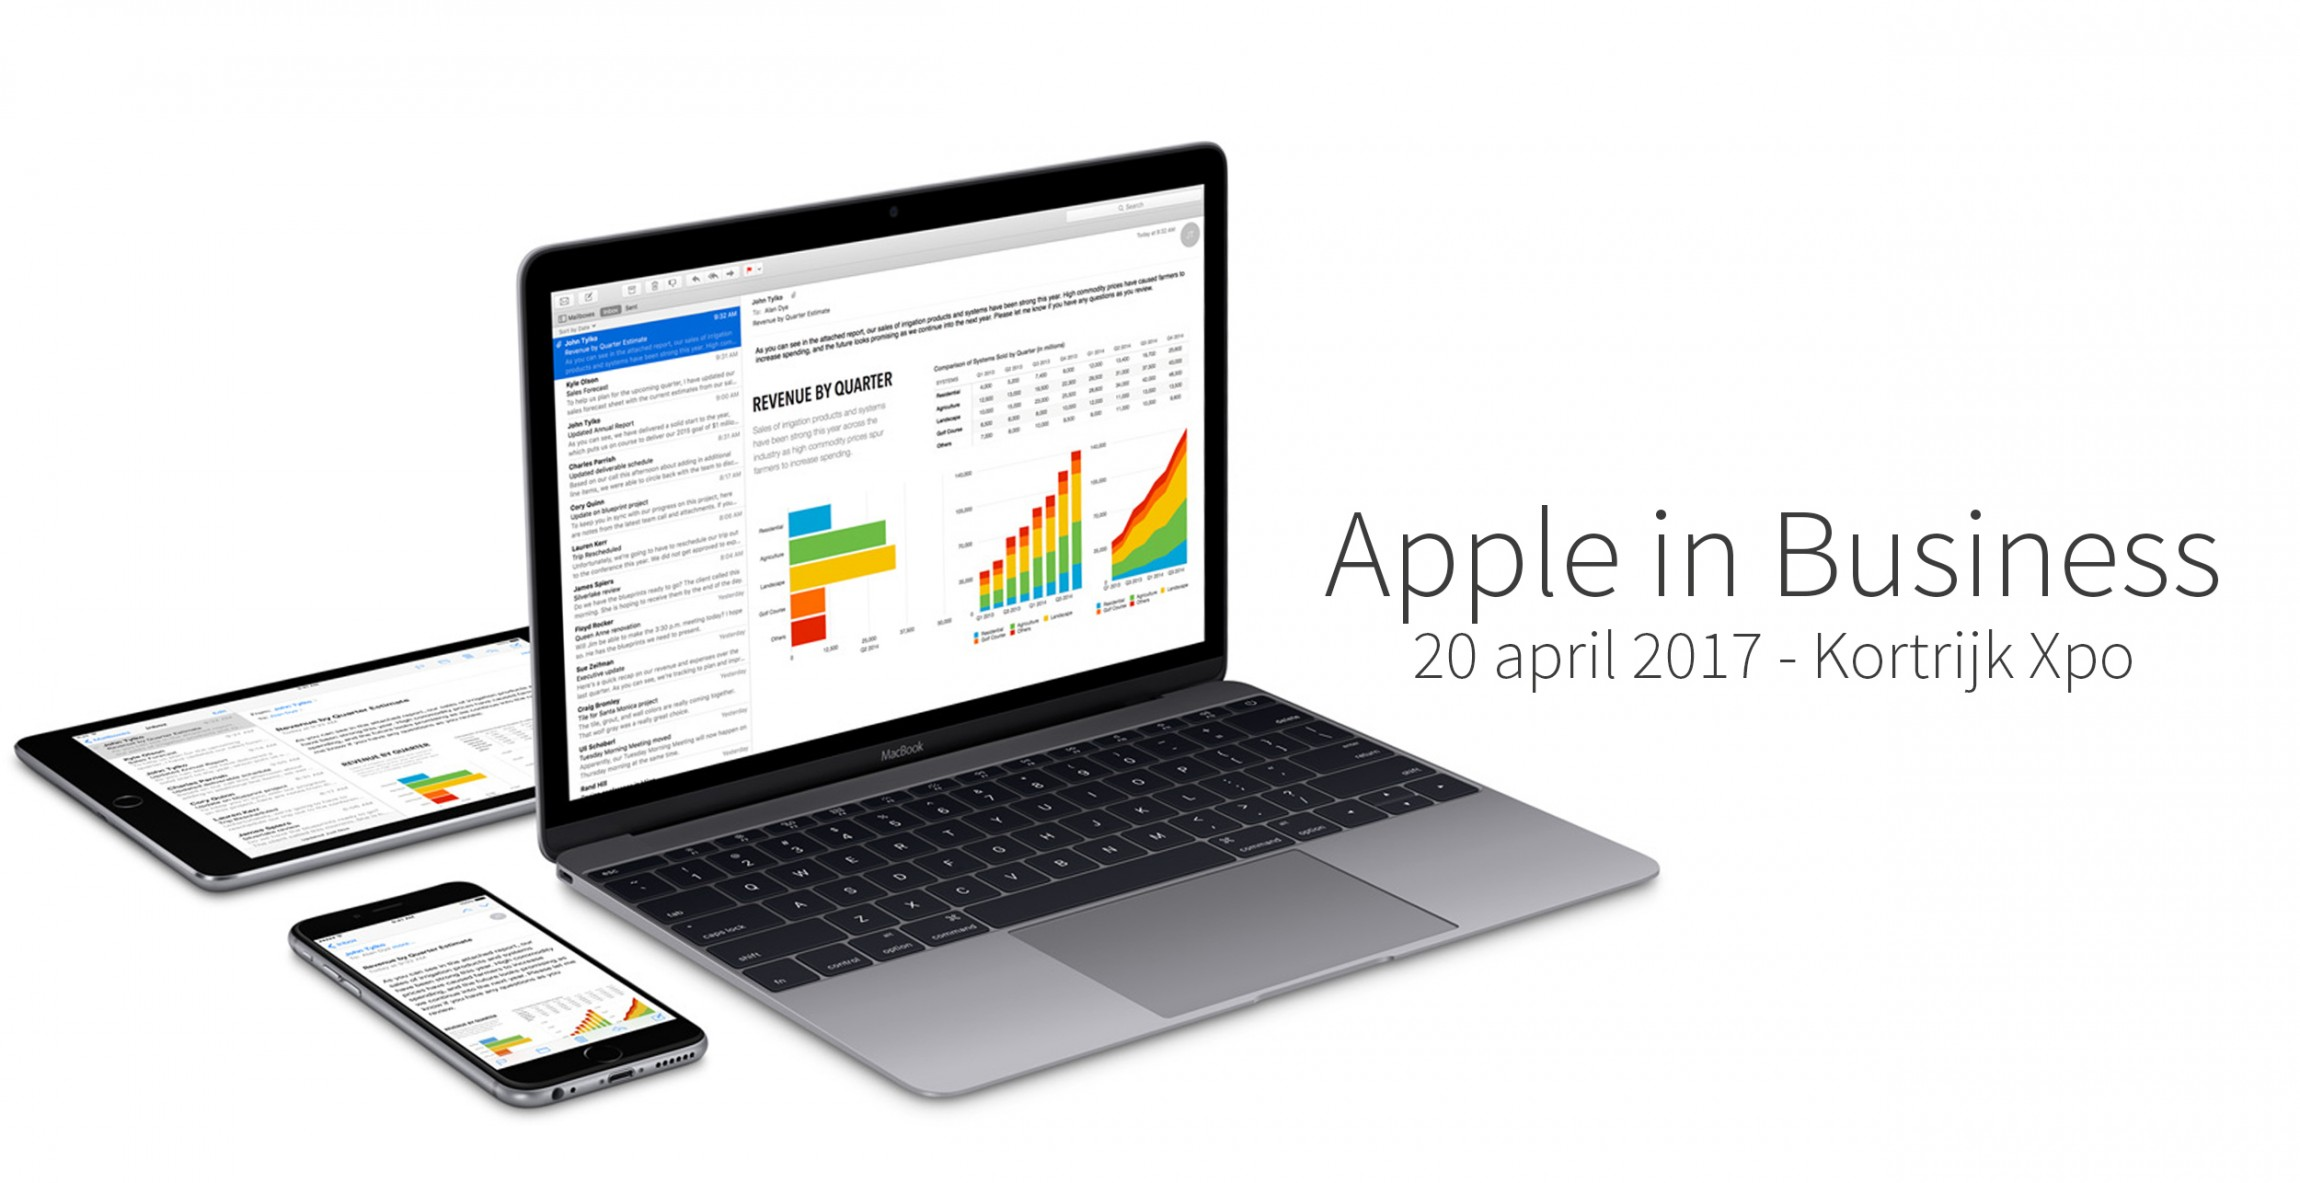 Apple in Business - banner